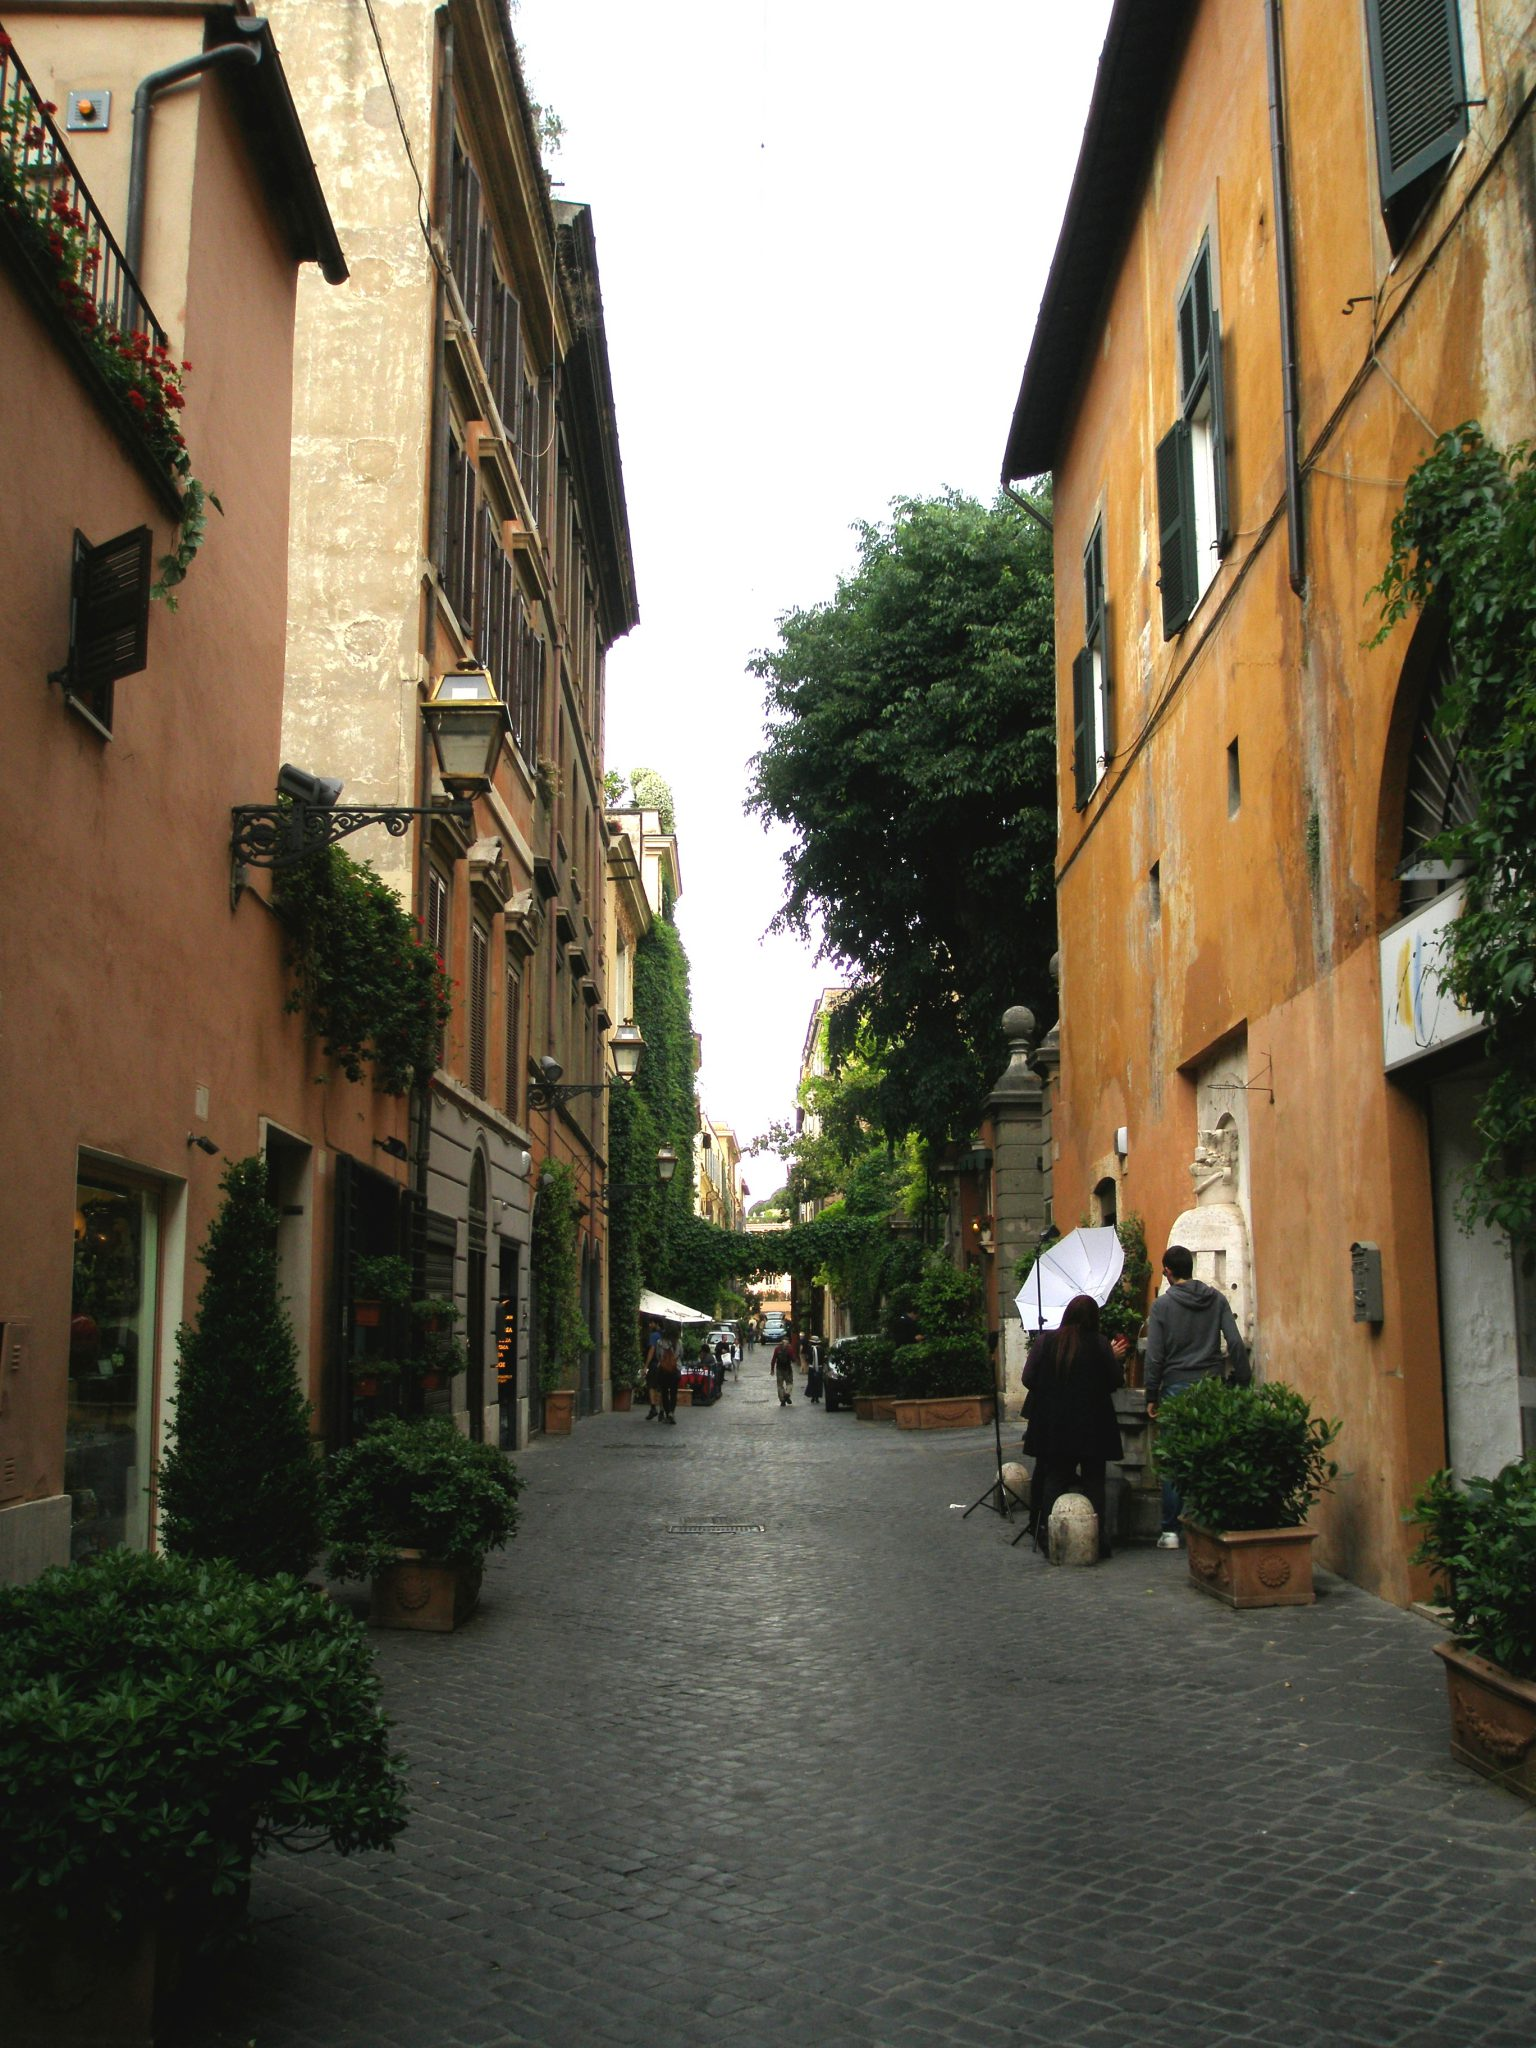 Looking northward, on Via Margutta